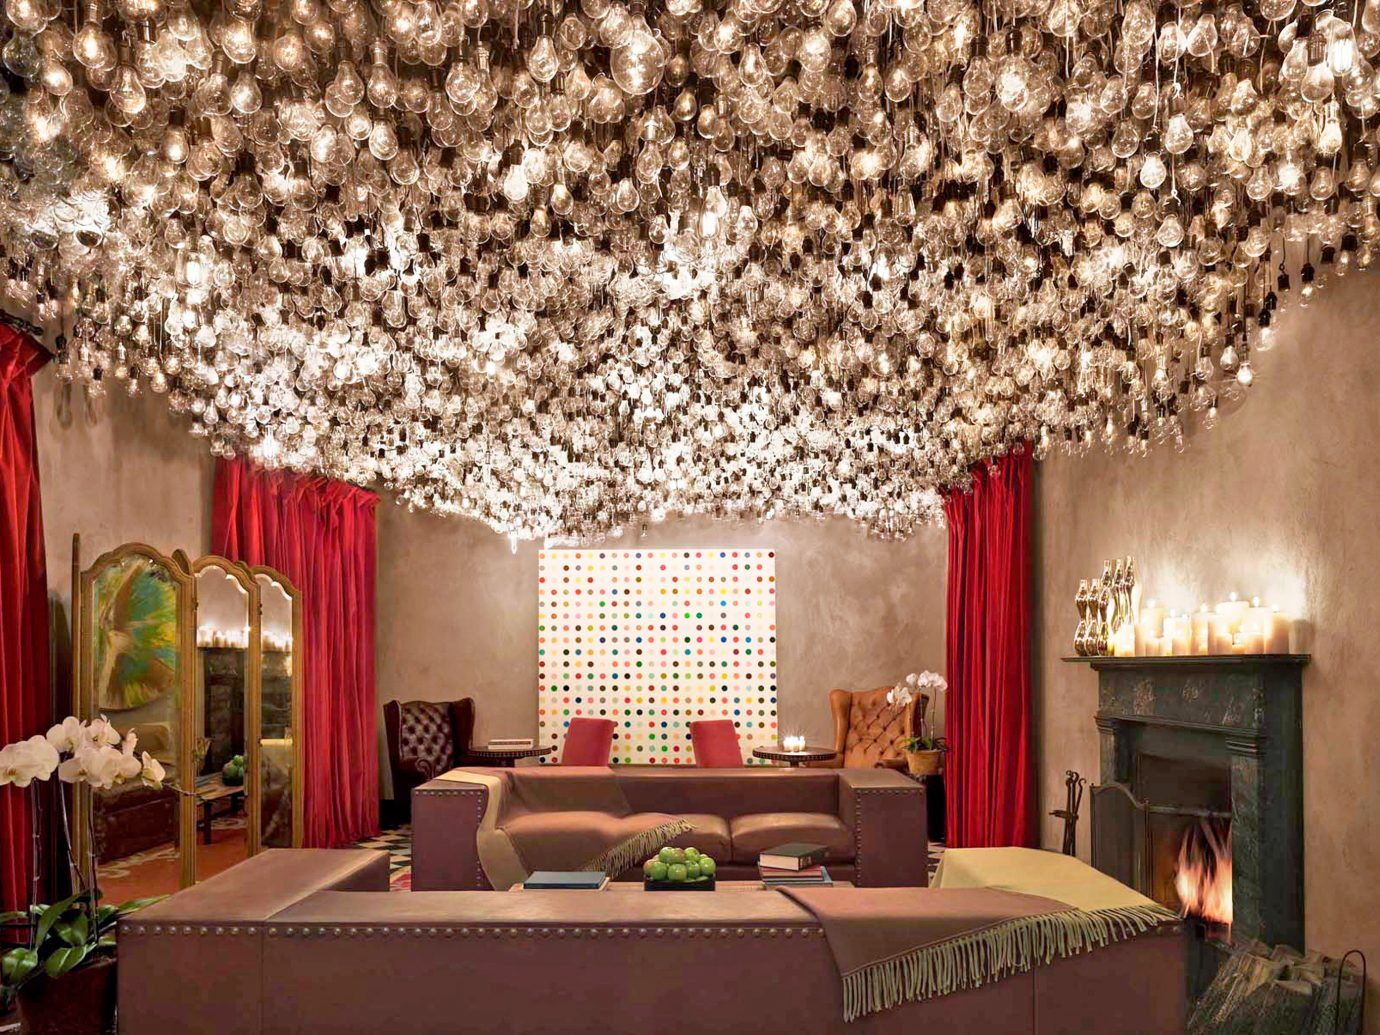 City Design Hotels Lounge Luxury Luxury Travel Romance Romantic Hotels indoor room interior design living room lighting ceiling estate decorated furniture